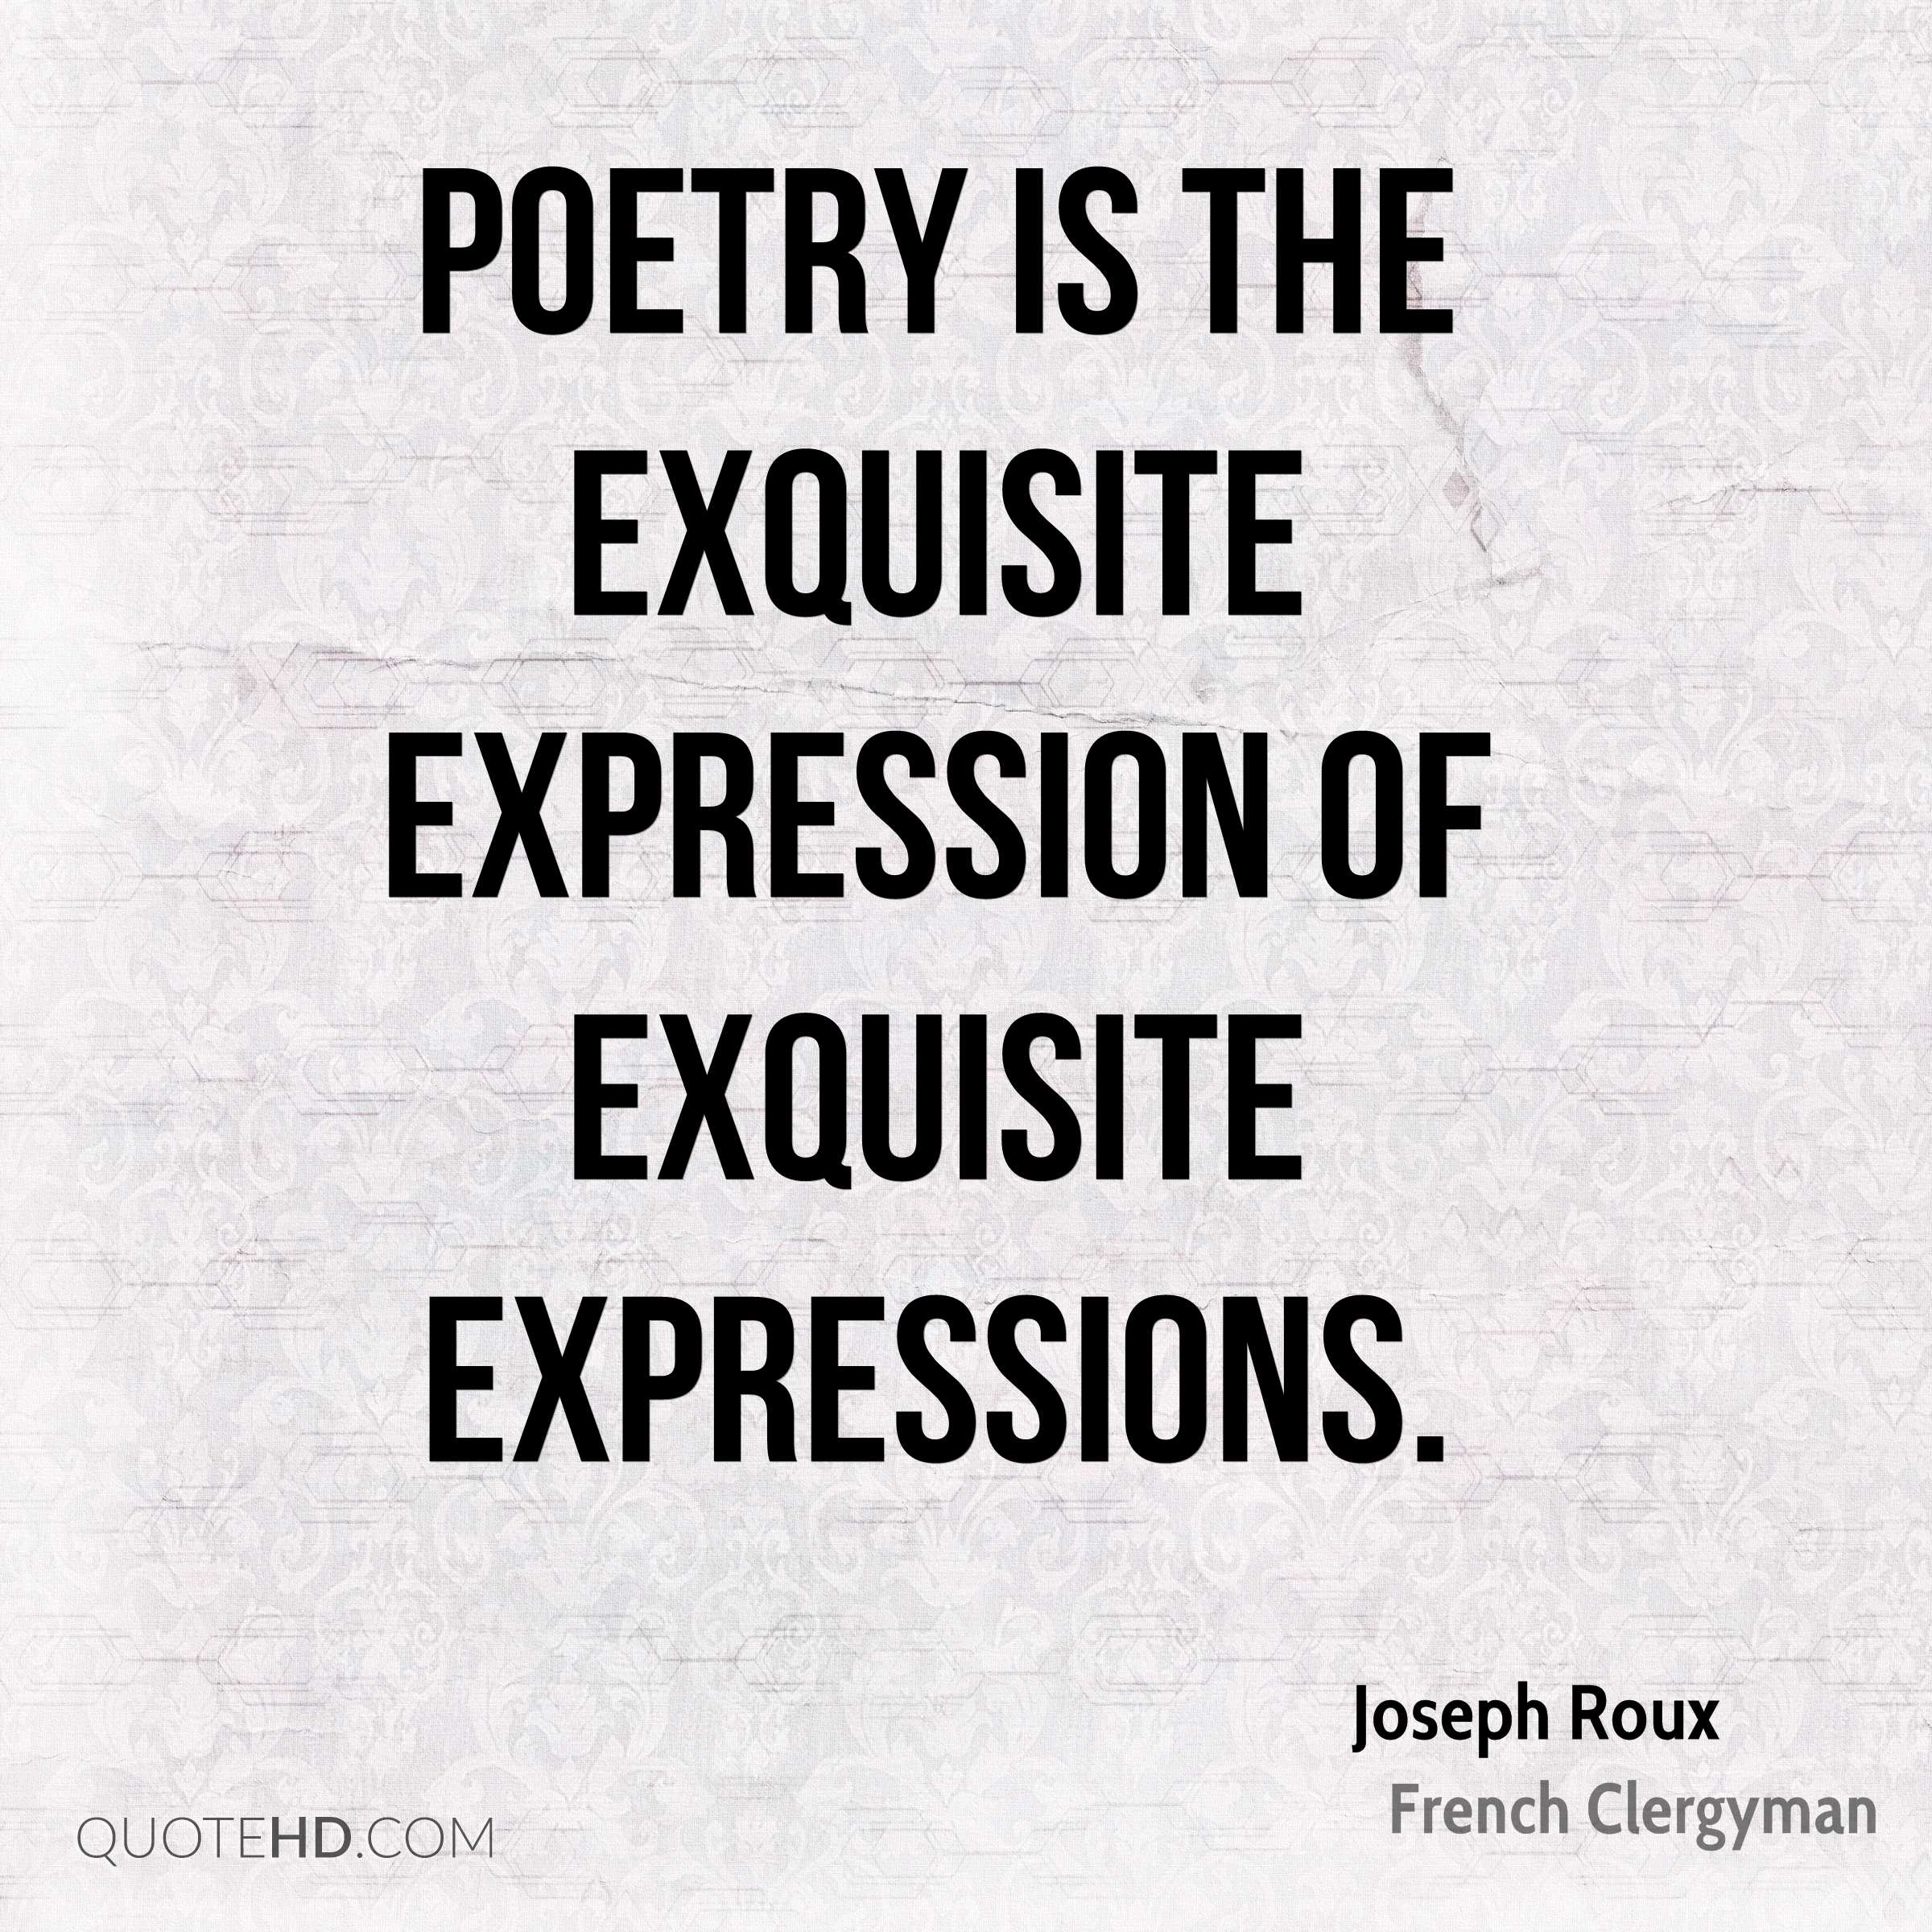 Poetry is the exquisite expression of exquisite expressions.